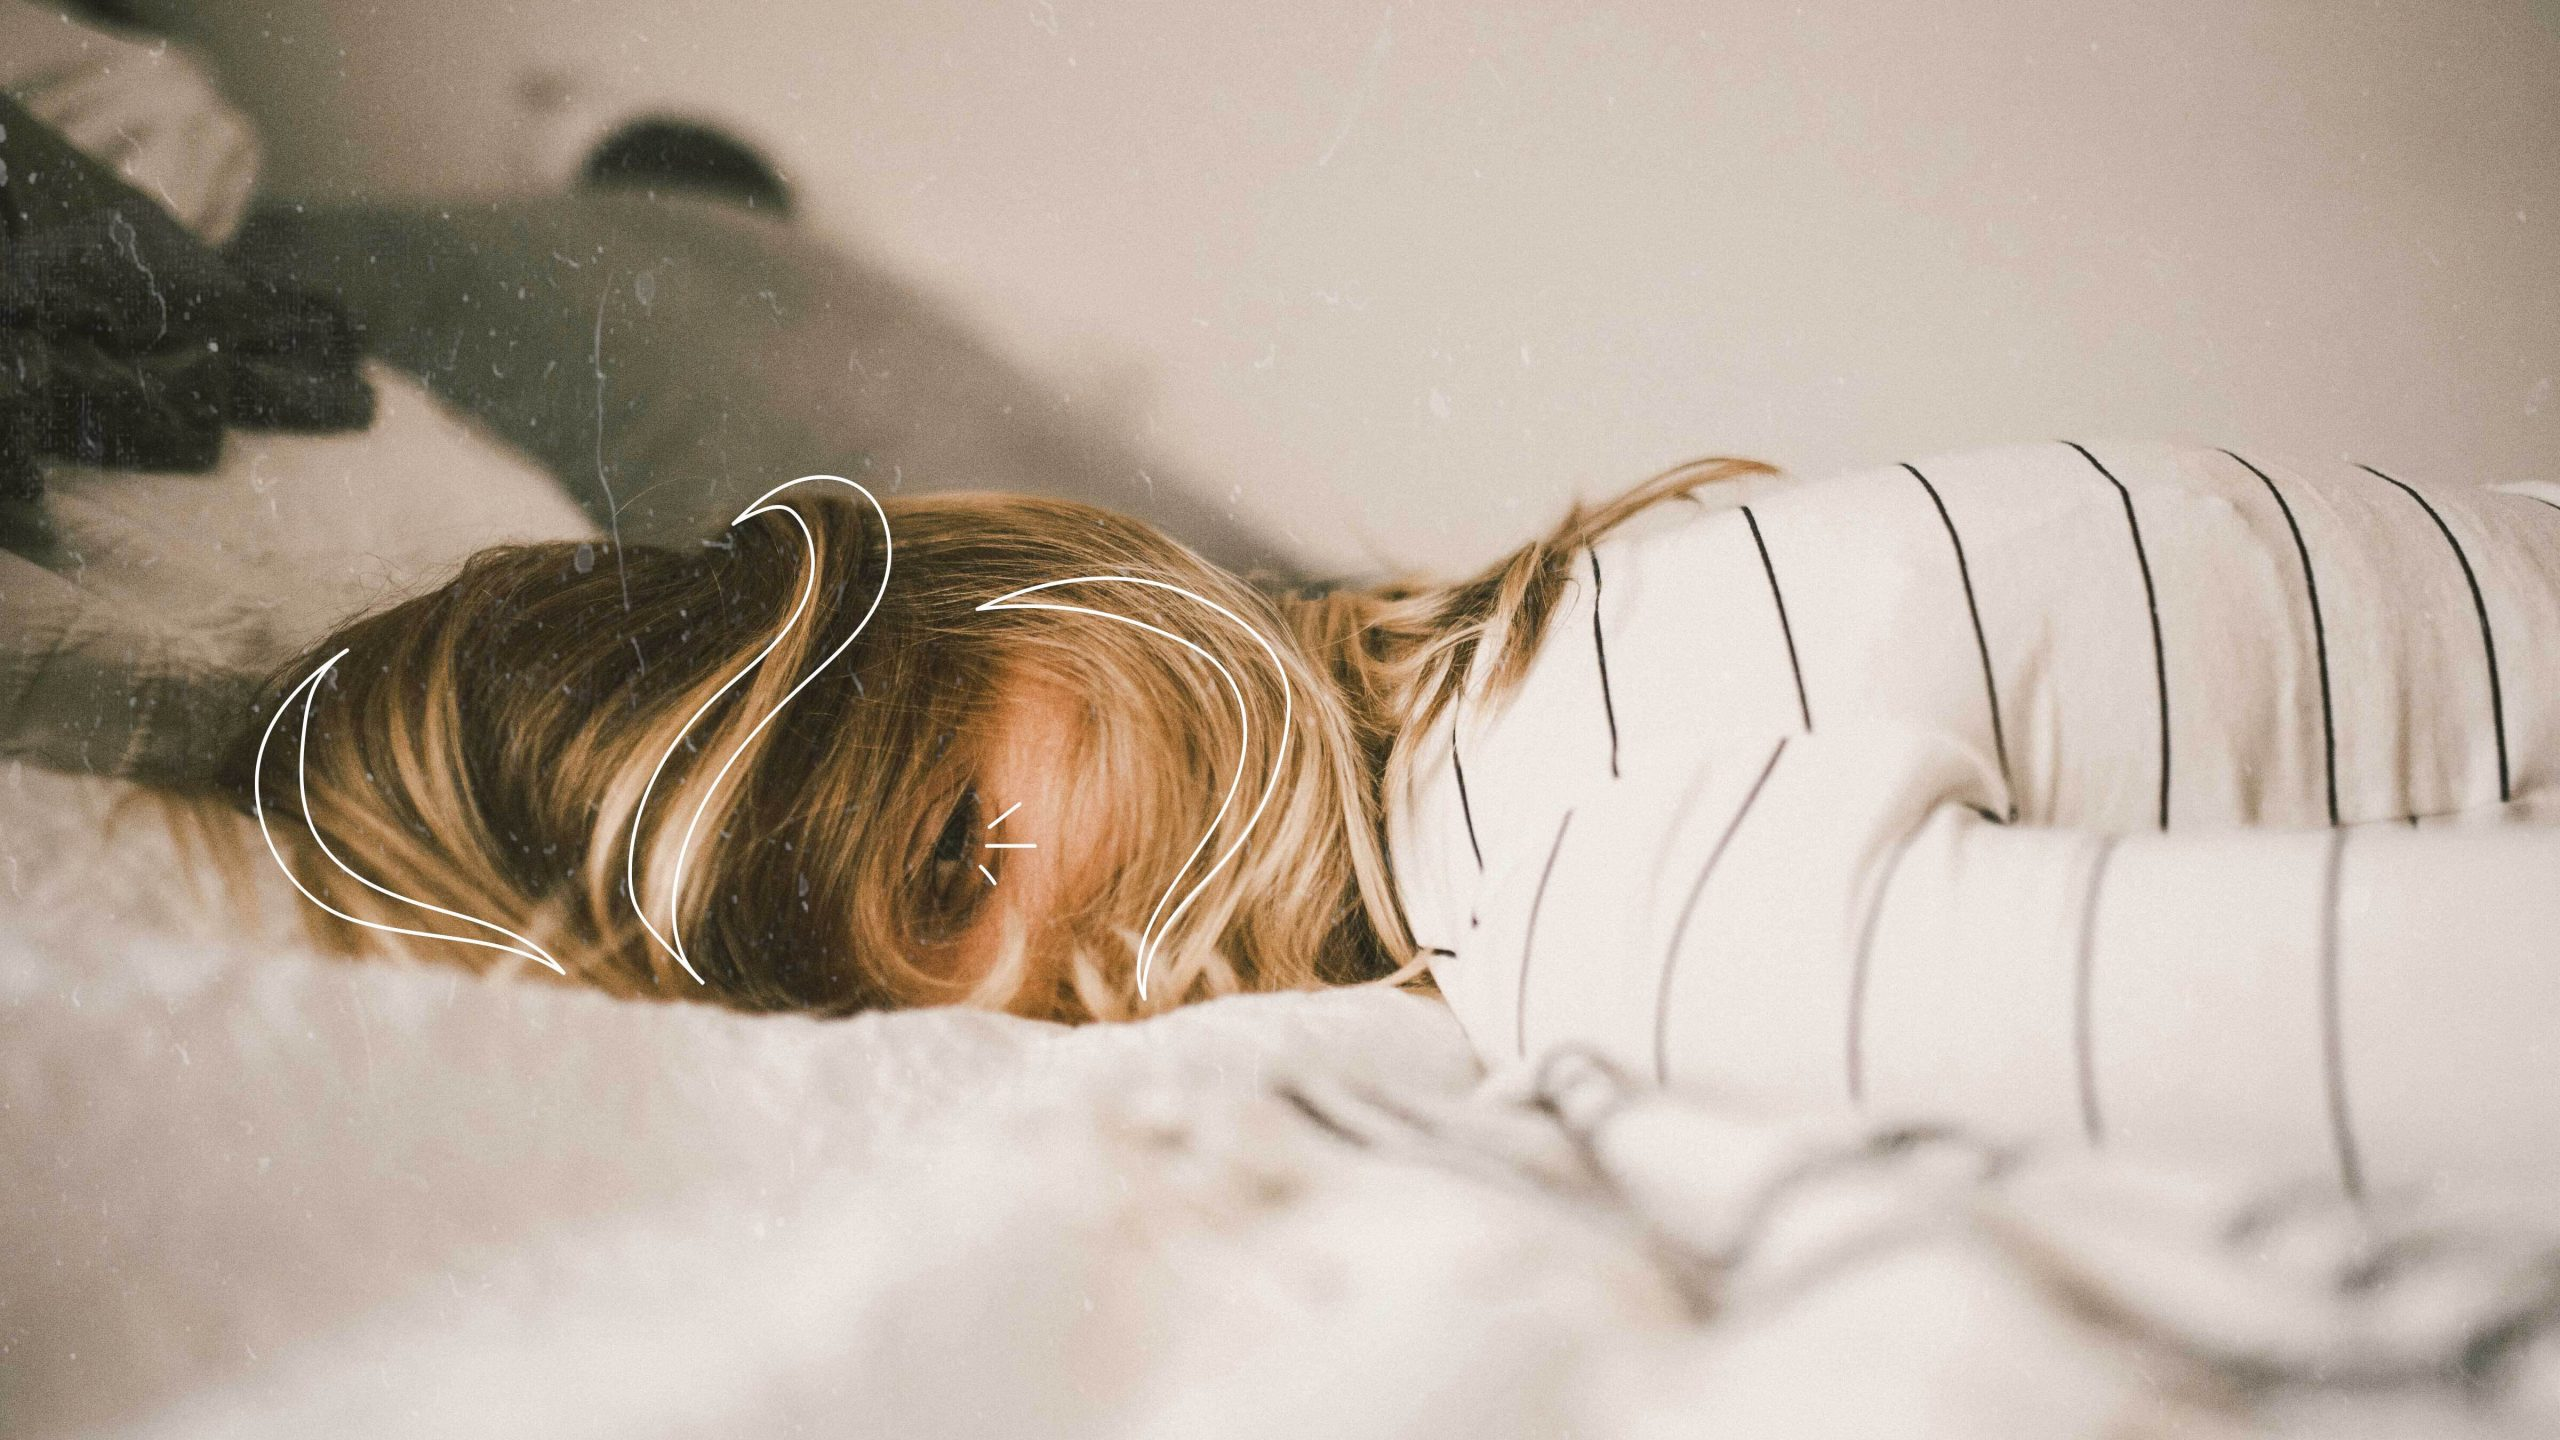 Women In Wellness: Why Women Are So Tired and Burned Out and What to Do About It